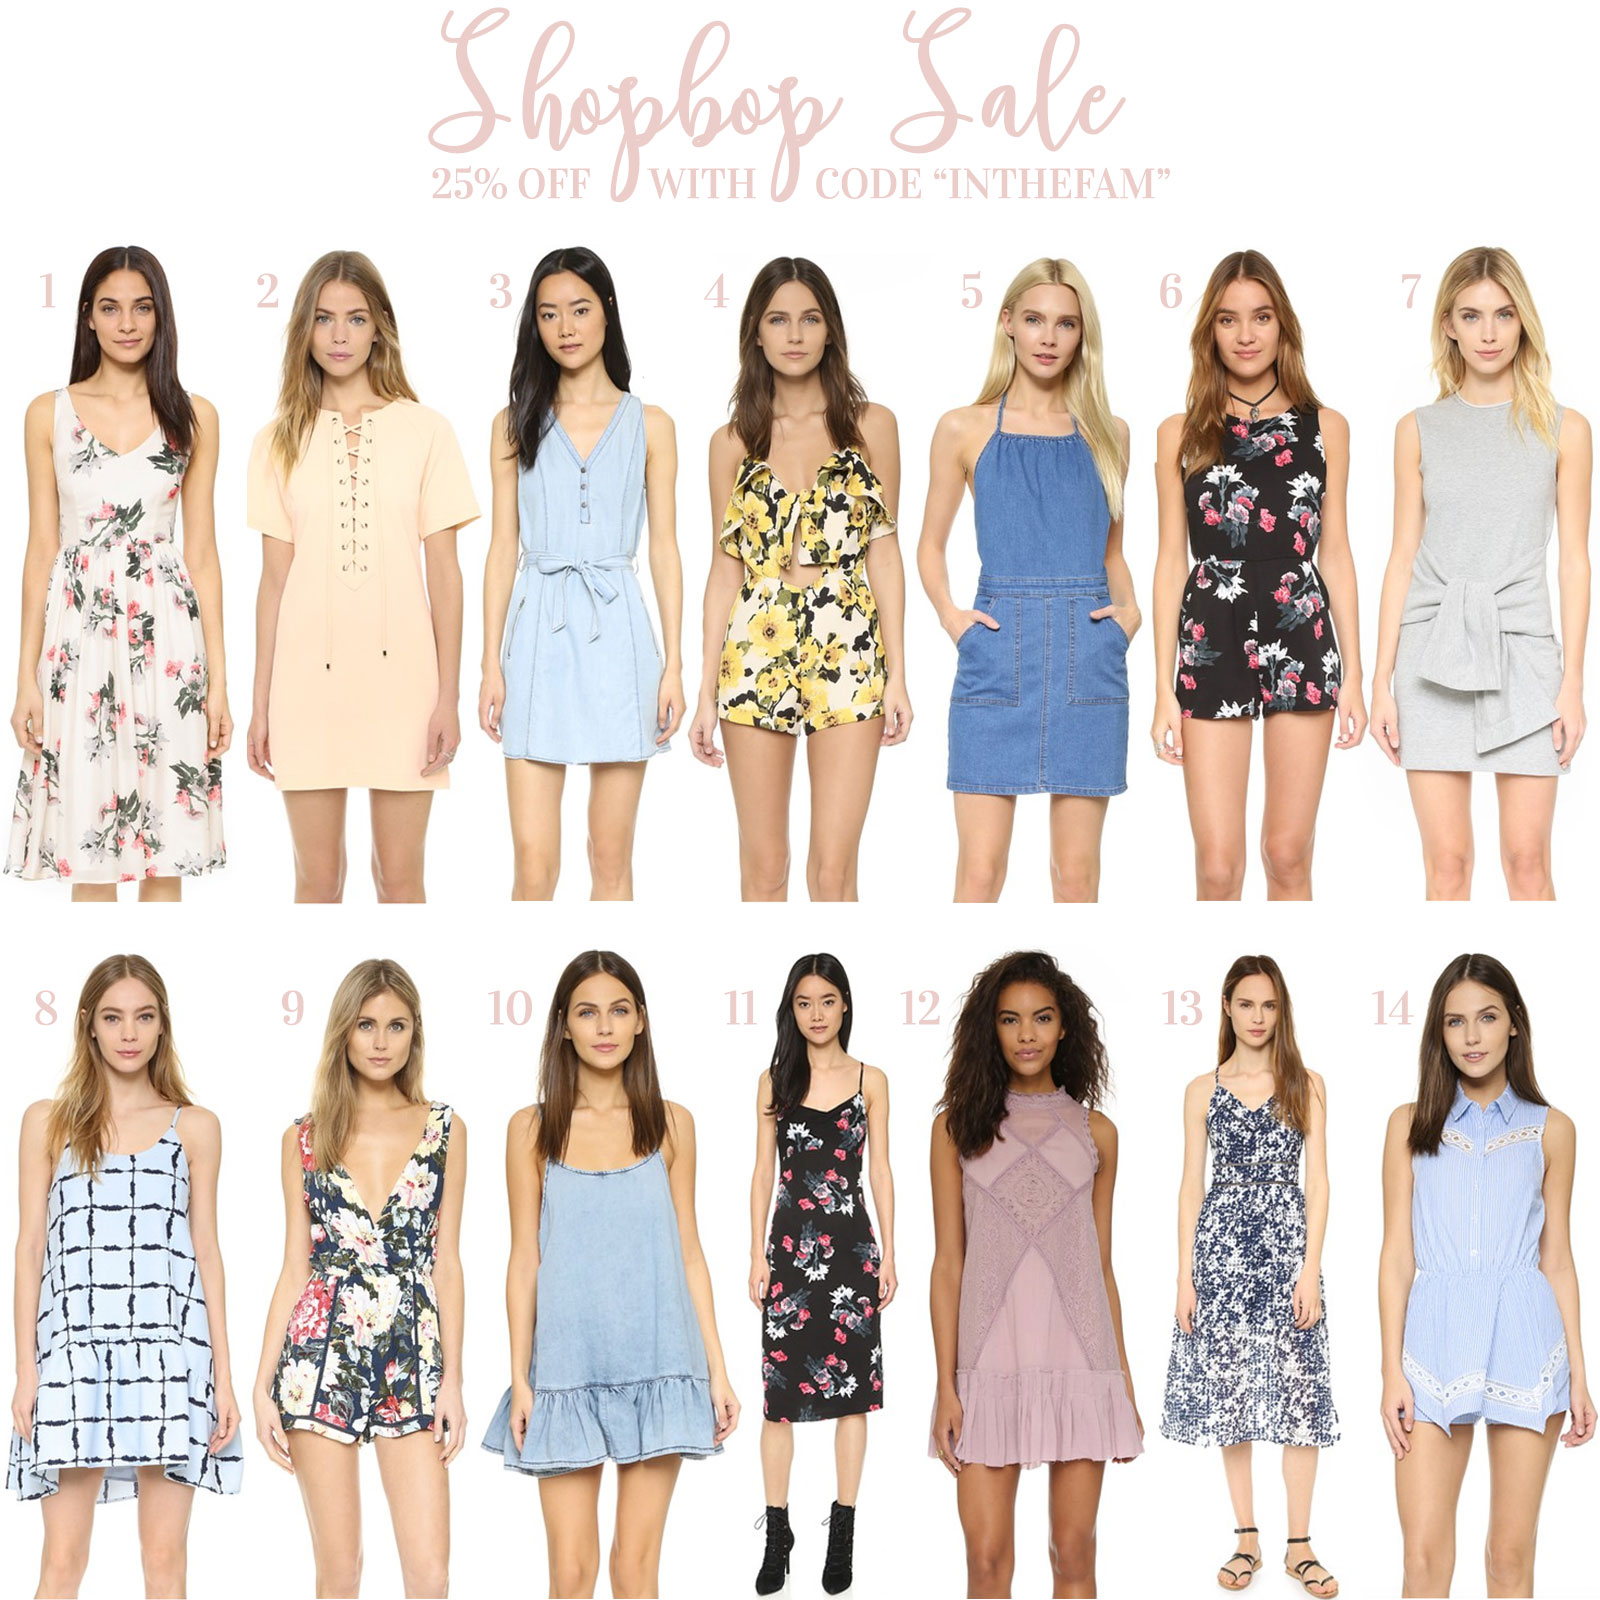 Shopbop Friends and Family Sale- The Best Dresses For Spring and Summer 2016!